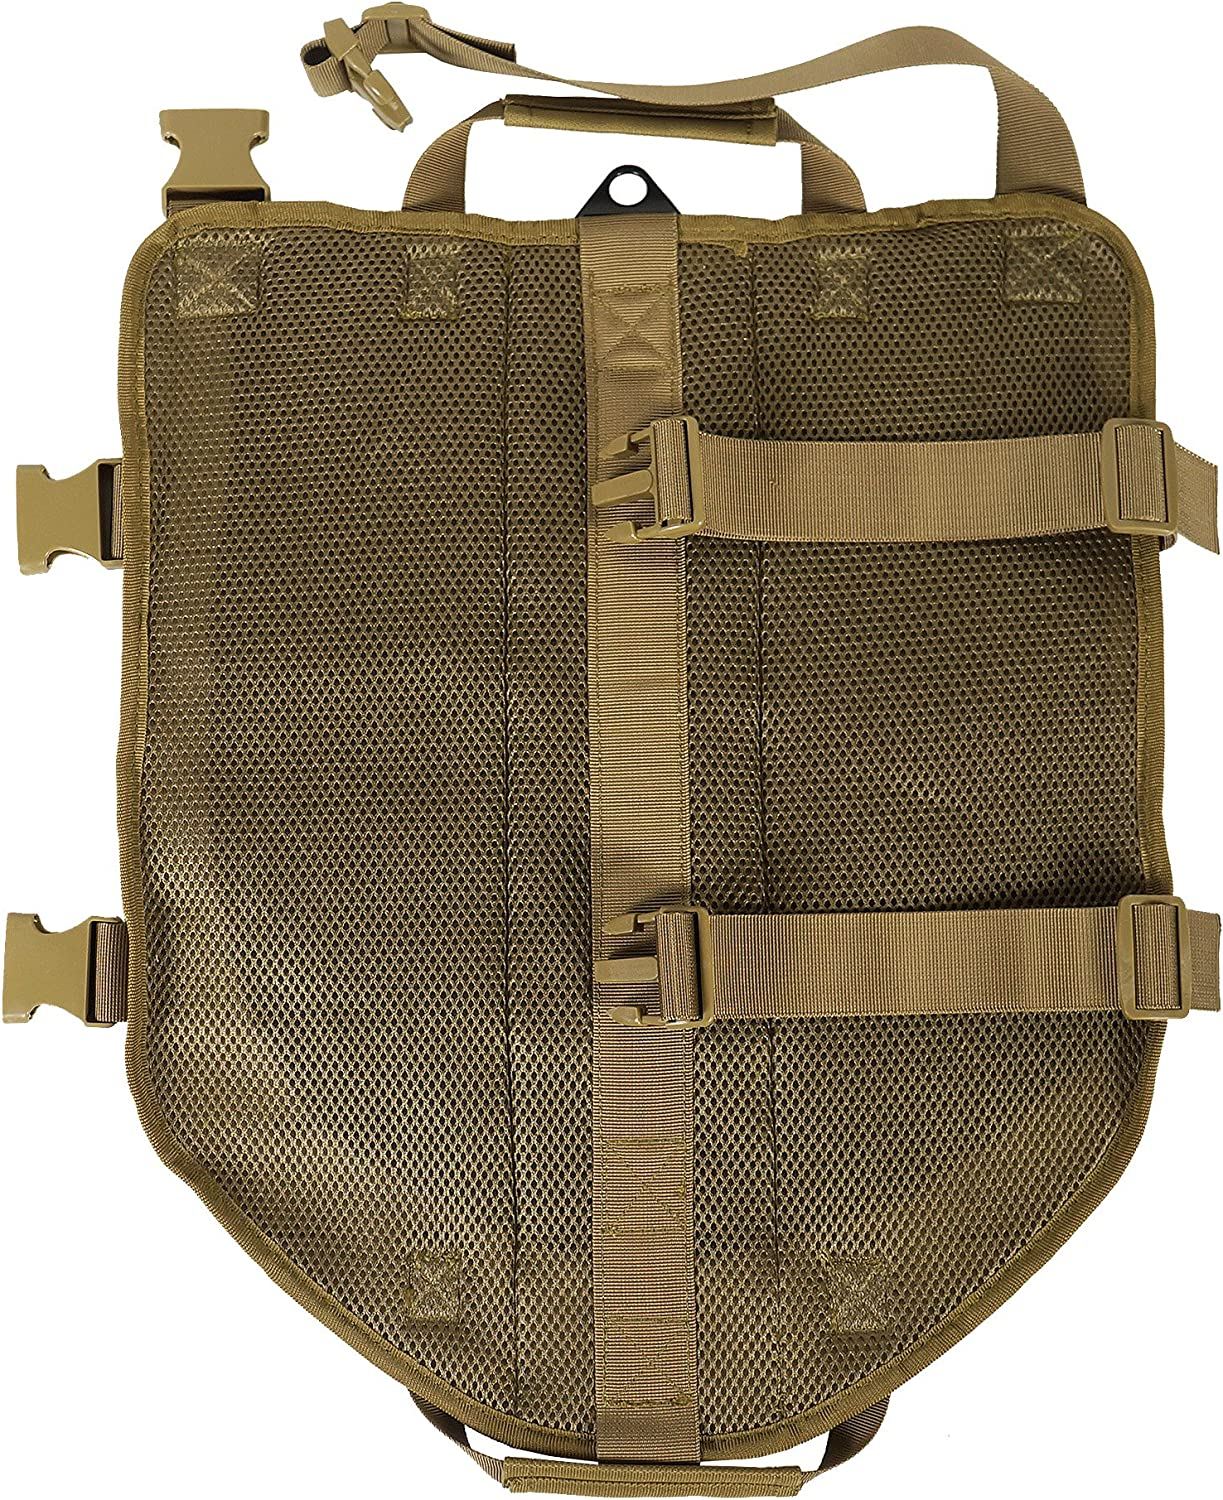 LIVABIT Canine Service Dog Tactical Molle Vest Harness [ Also for Cats & Puppies ] TAN X-Small